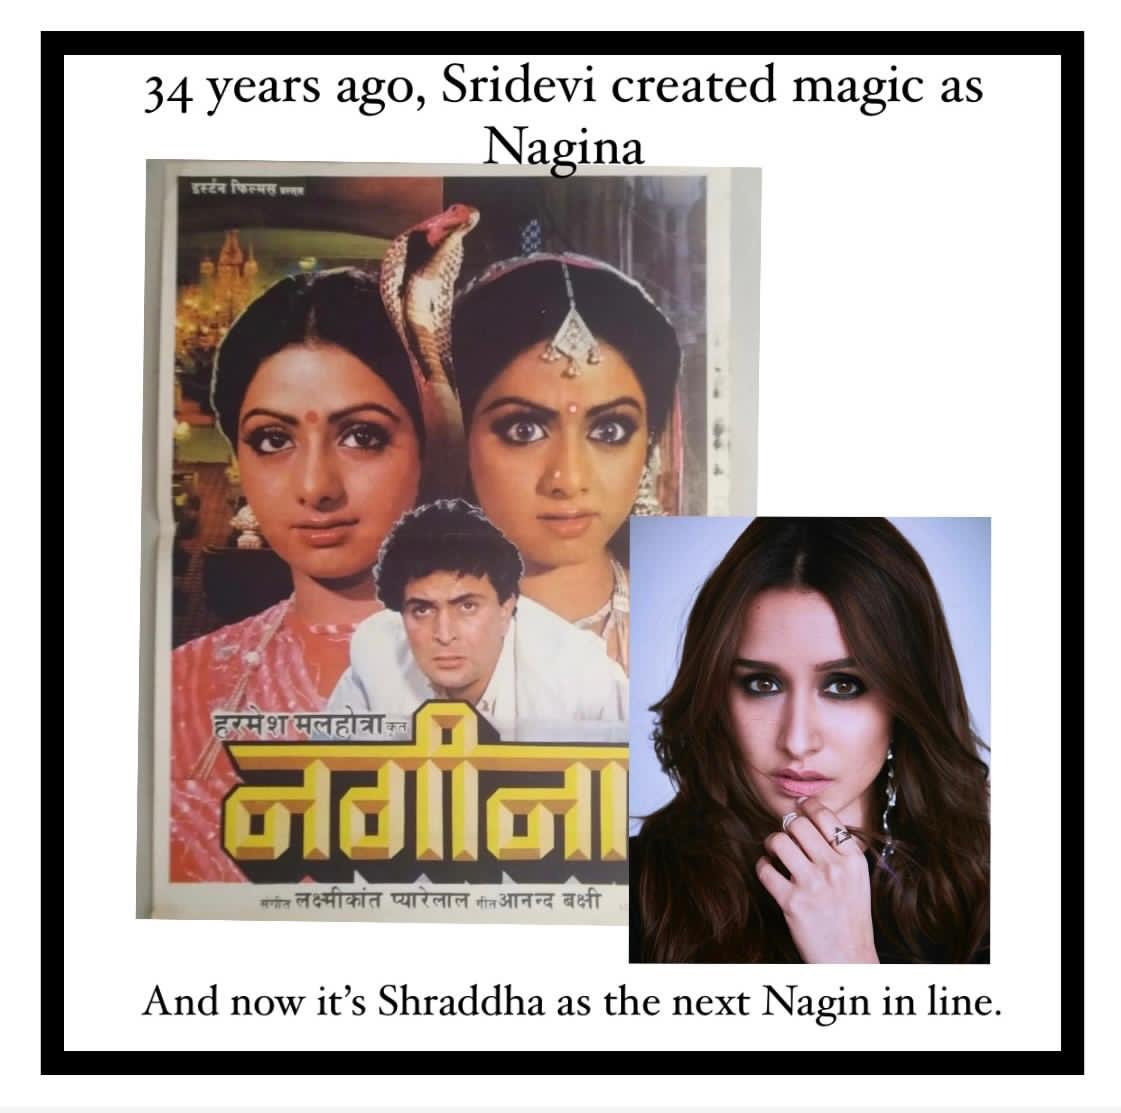 Sridevi's Nagina released on November 28, 1986 and she's been the most iconic #Nagin ever since. Can't wait for @Shraddhakapoor to recreate the magic as the 'millennial' Nagin. All the best to the team!! @furiavishal  @nikhil_dwivedi @saffronbrdmedia #Shraddhakapoor